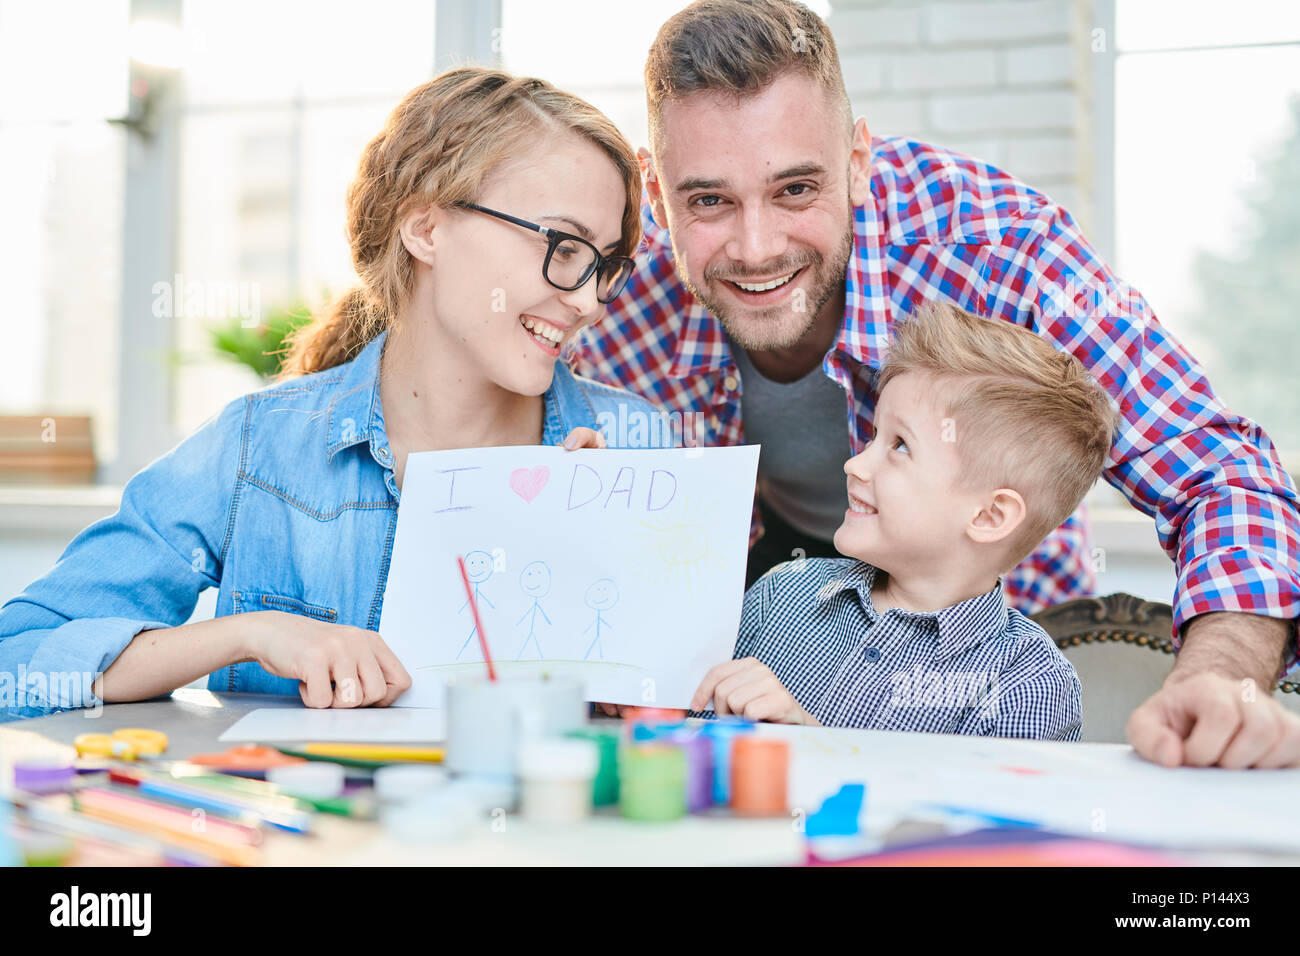 Loving Family Celebrating Fathers Day - Stock Image